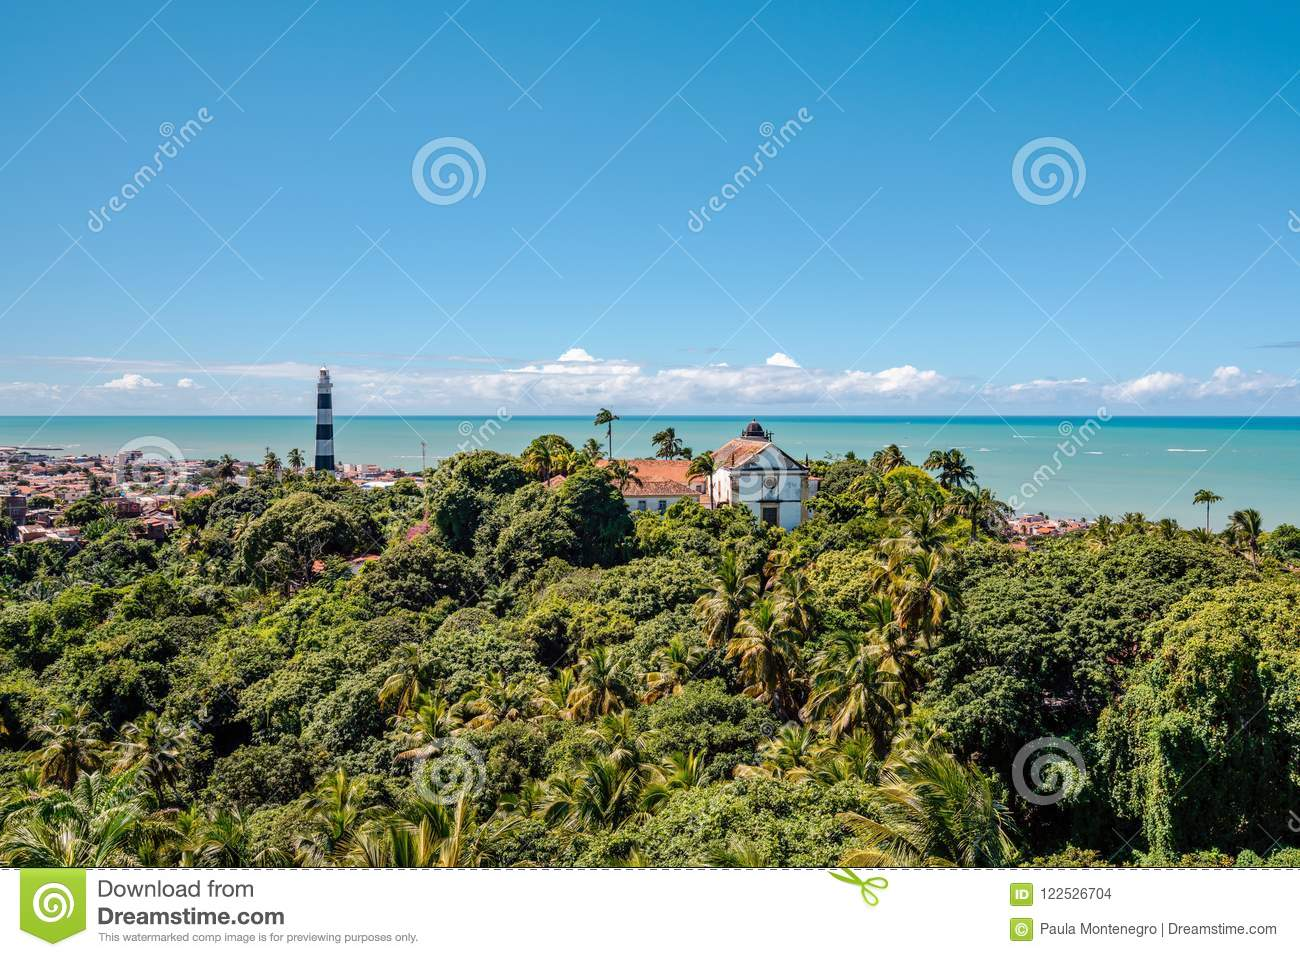 Aerial view of Olinda Lighthouse and Church of Our Lady of Grace, Catholic Church built in 1551, Olinda, Pernambuco, Brazil